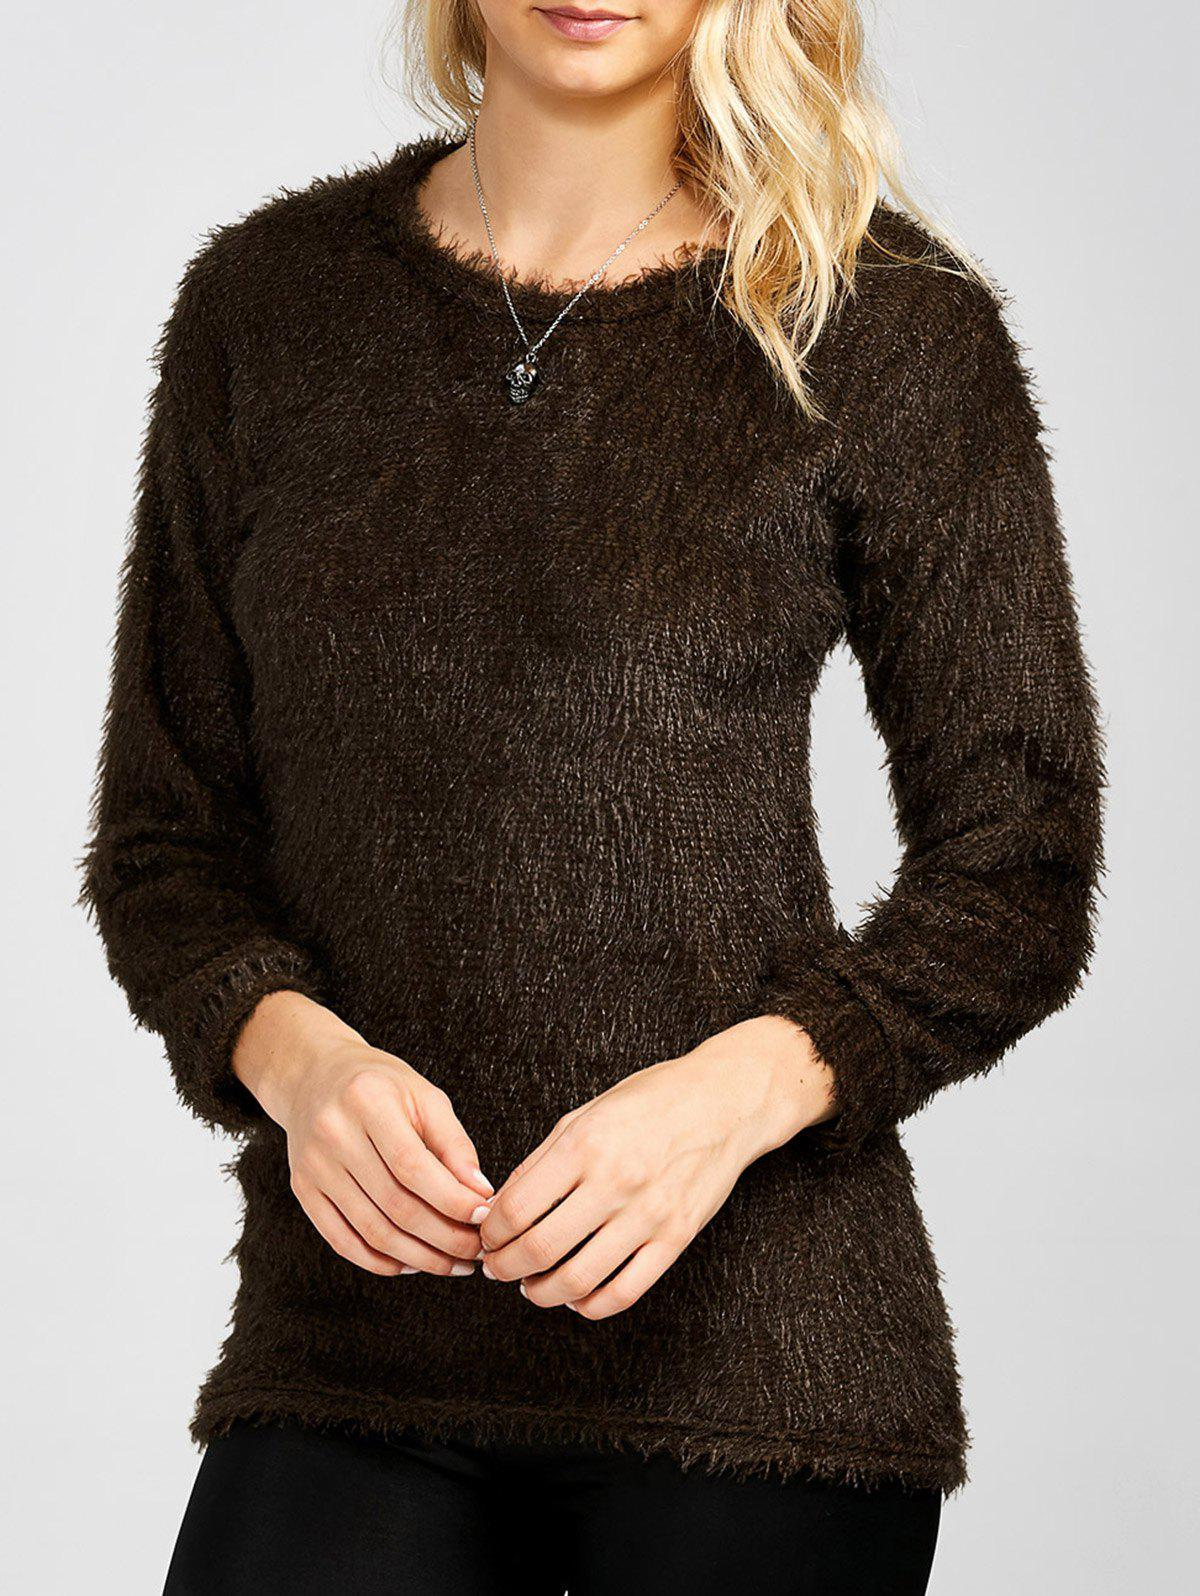 Drop Shoulder Long Fuzzy Sweater - COFFEE M